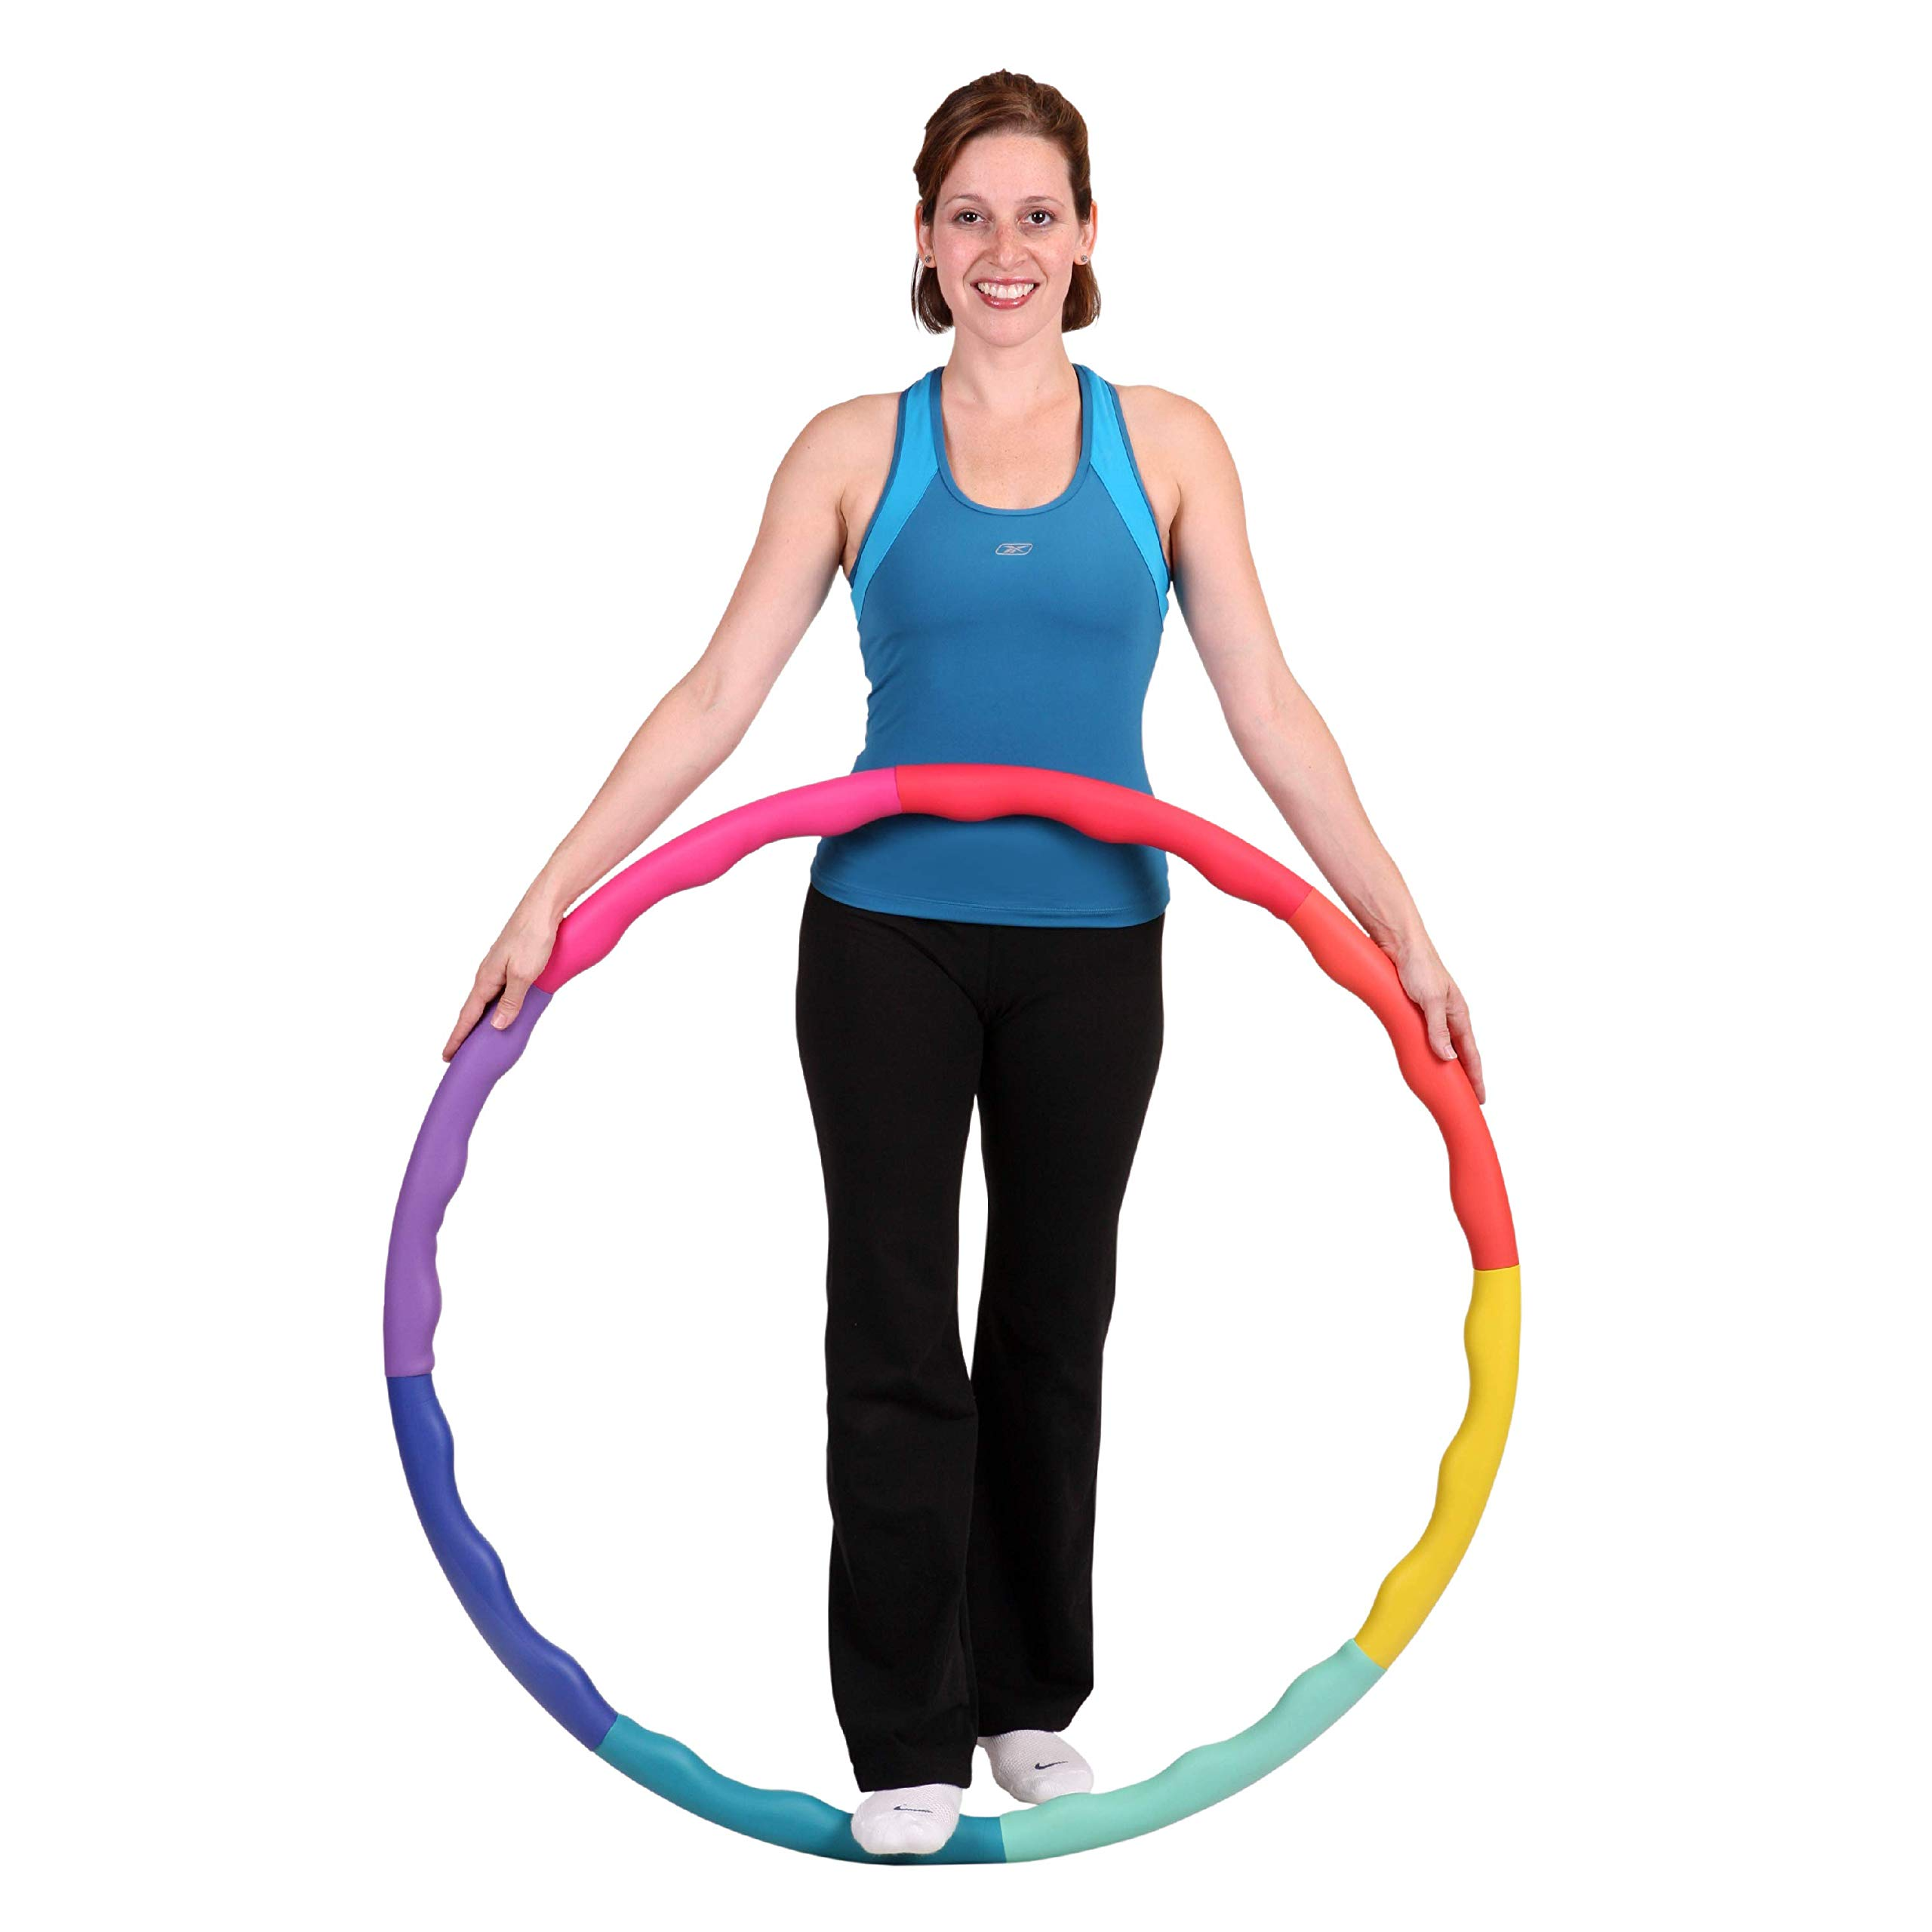 5lb Weighted weight loss Hoola Hoop  for Exercise,Fitness workout Health Hoop®